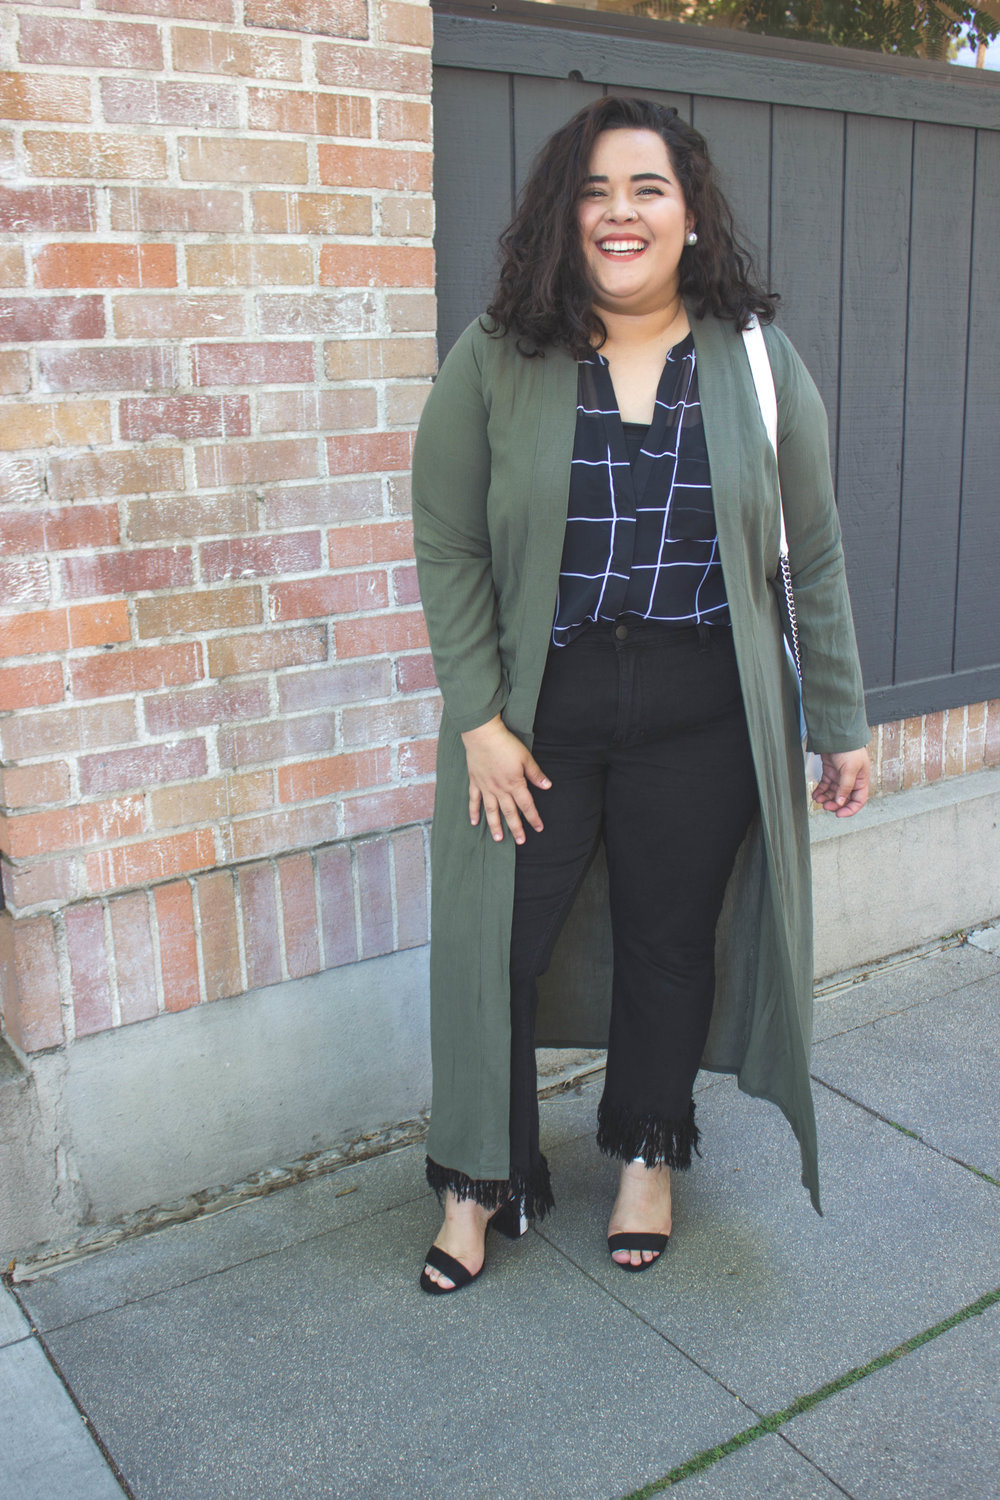 An Olive Green Duster   + Perfect contrast color for a black and white look   + White crossbody purse -